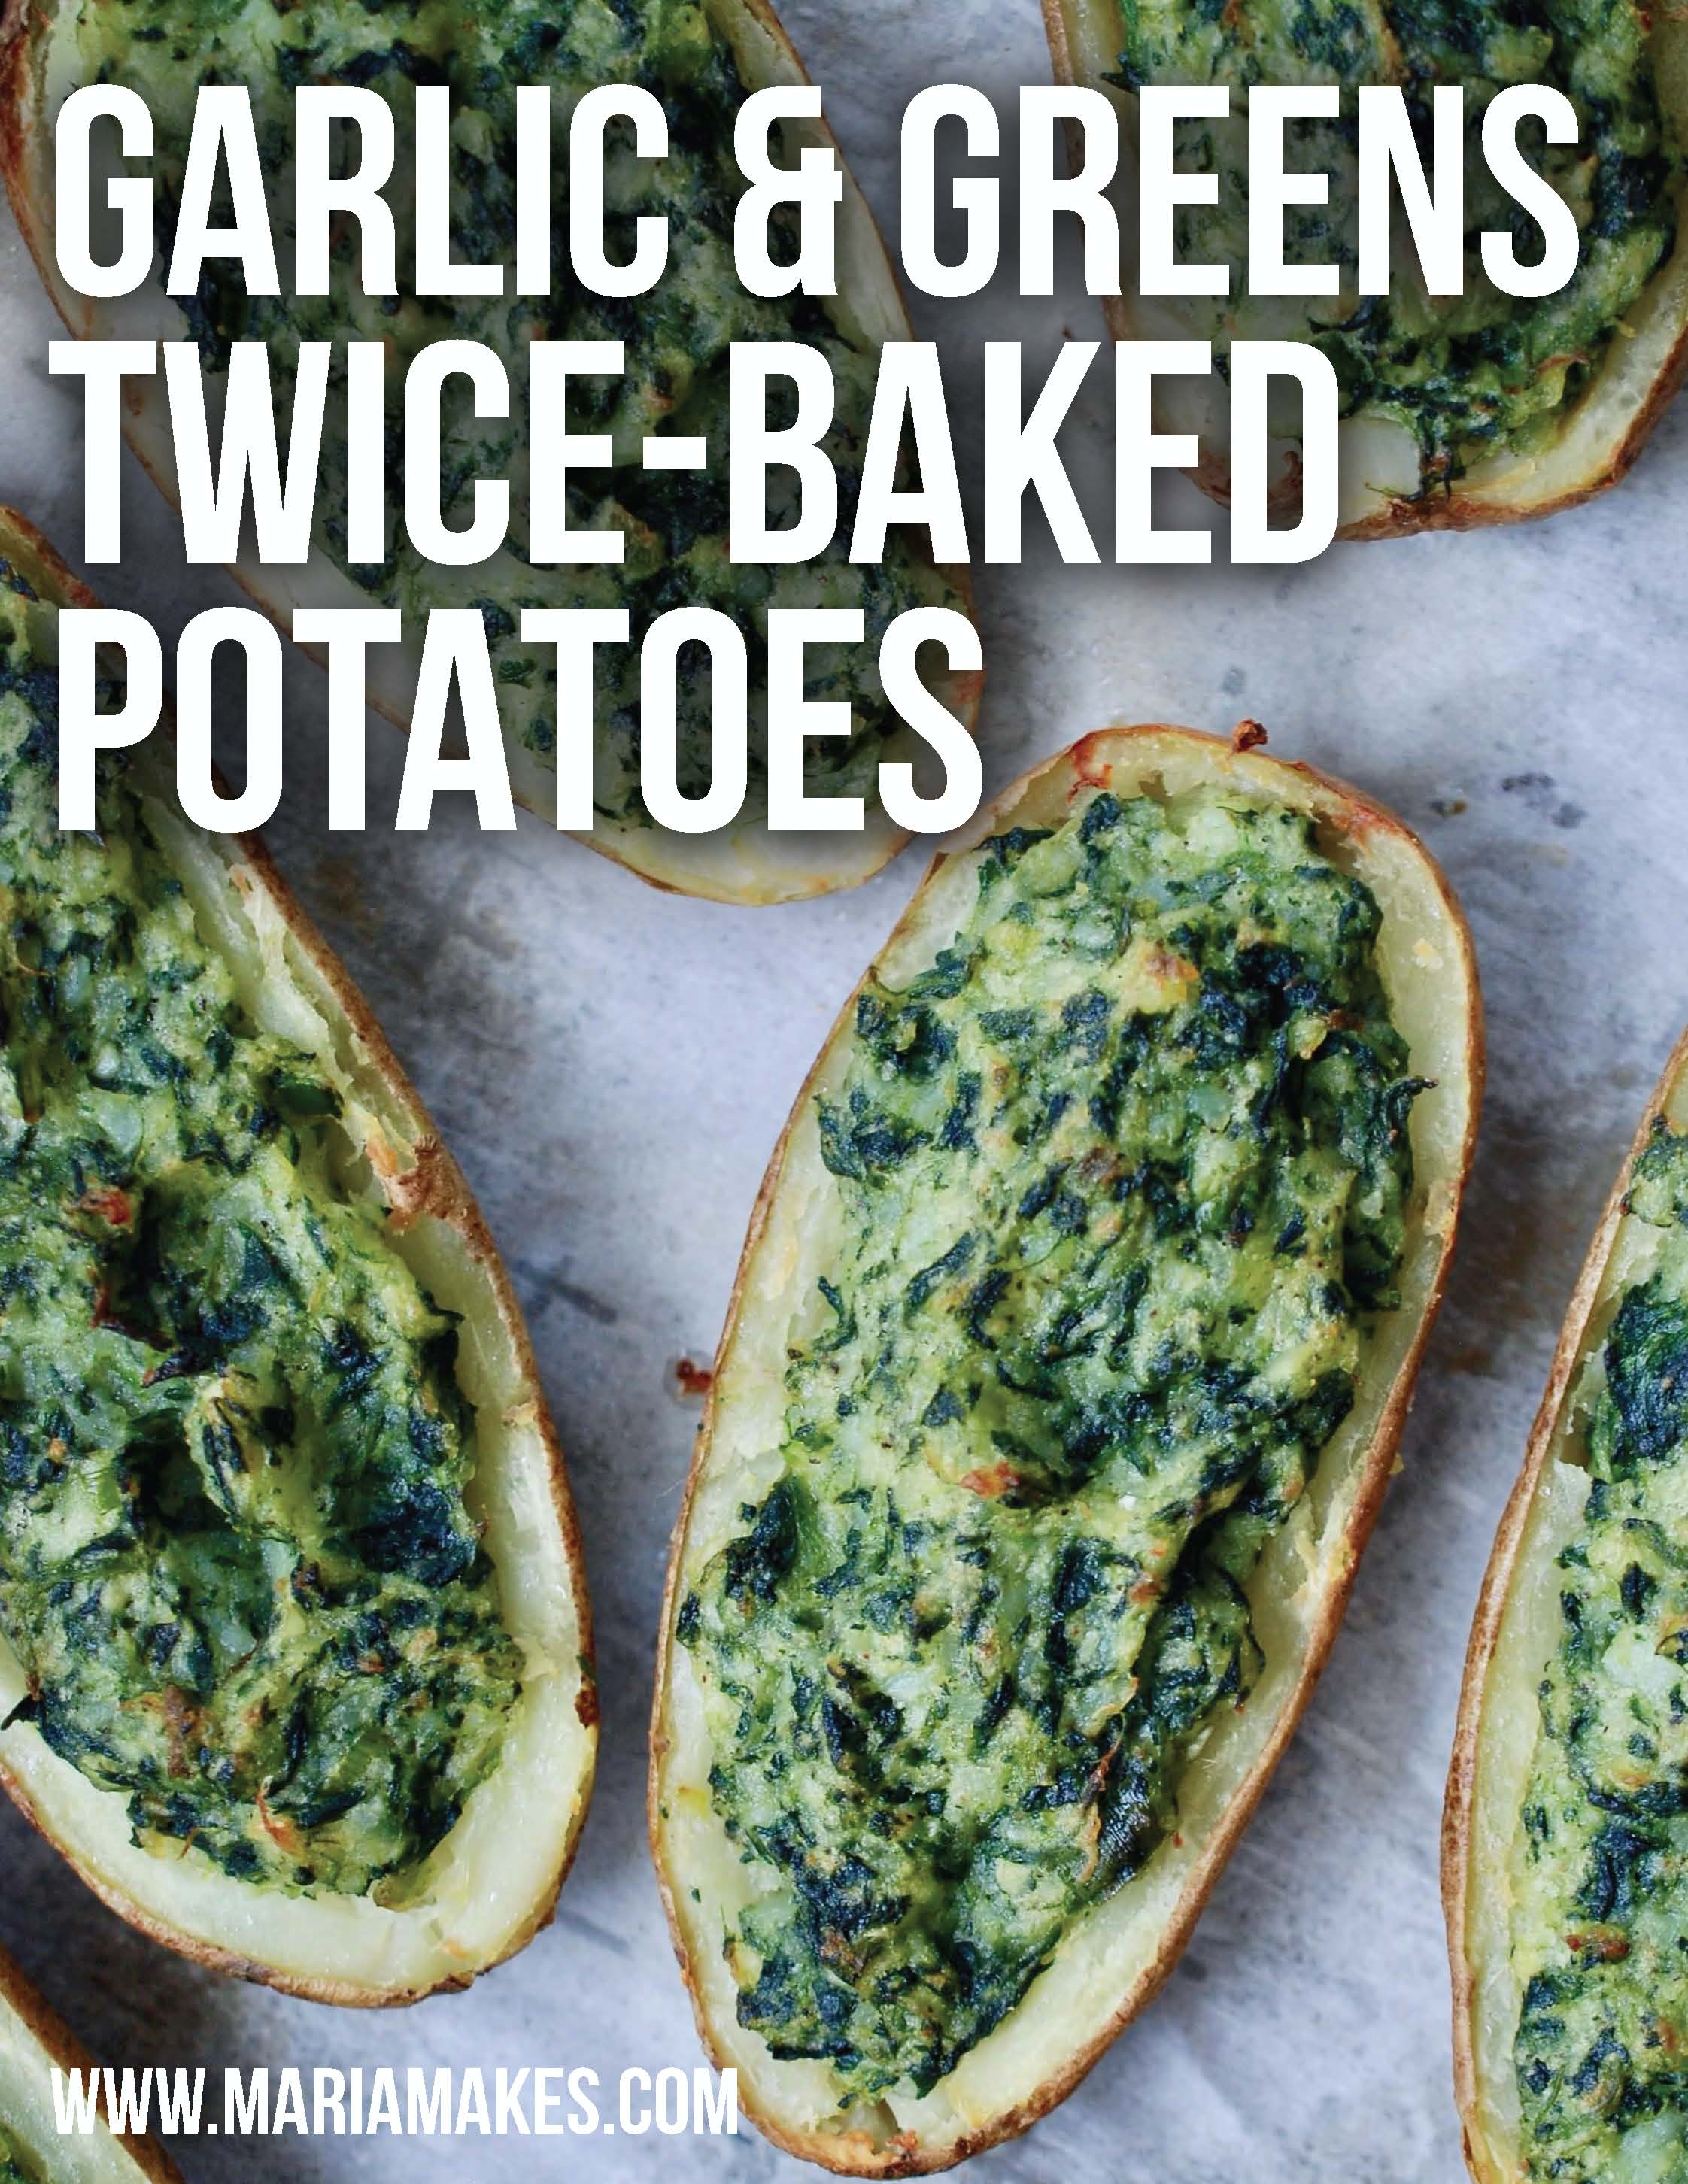 Garlic & Greens Twice Baked Potatoes – Maria Makes: The best of both worlds! Creamy mashed potatoes on the inside, crispy skin on the outside! These potatoes are super garlicky with an extra veggie boost from the spinach! #whole30 #paleo #grainfree #dairyfree #vegan